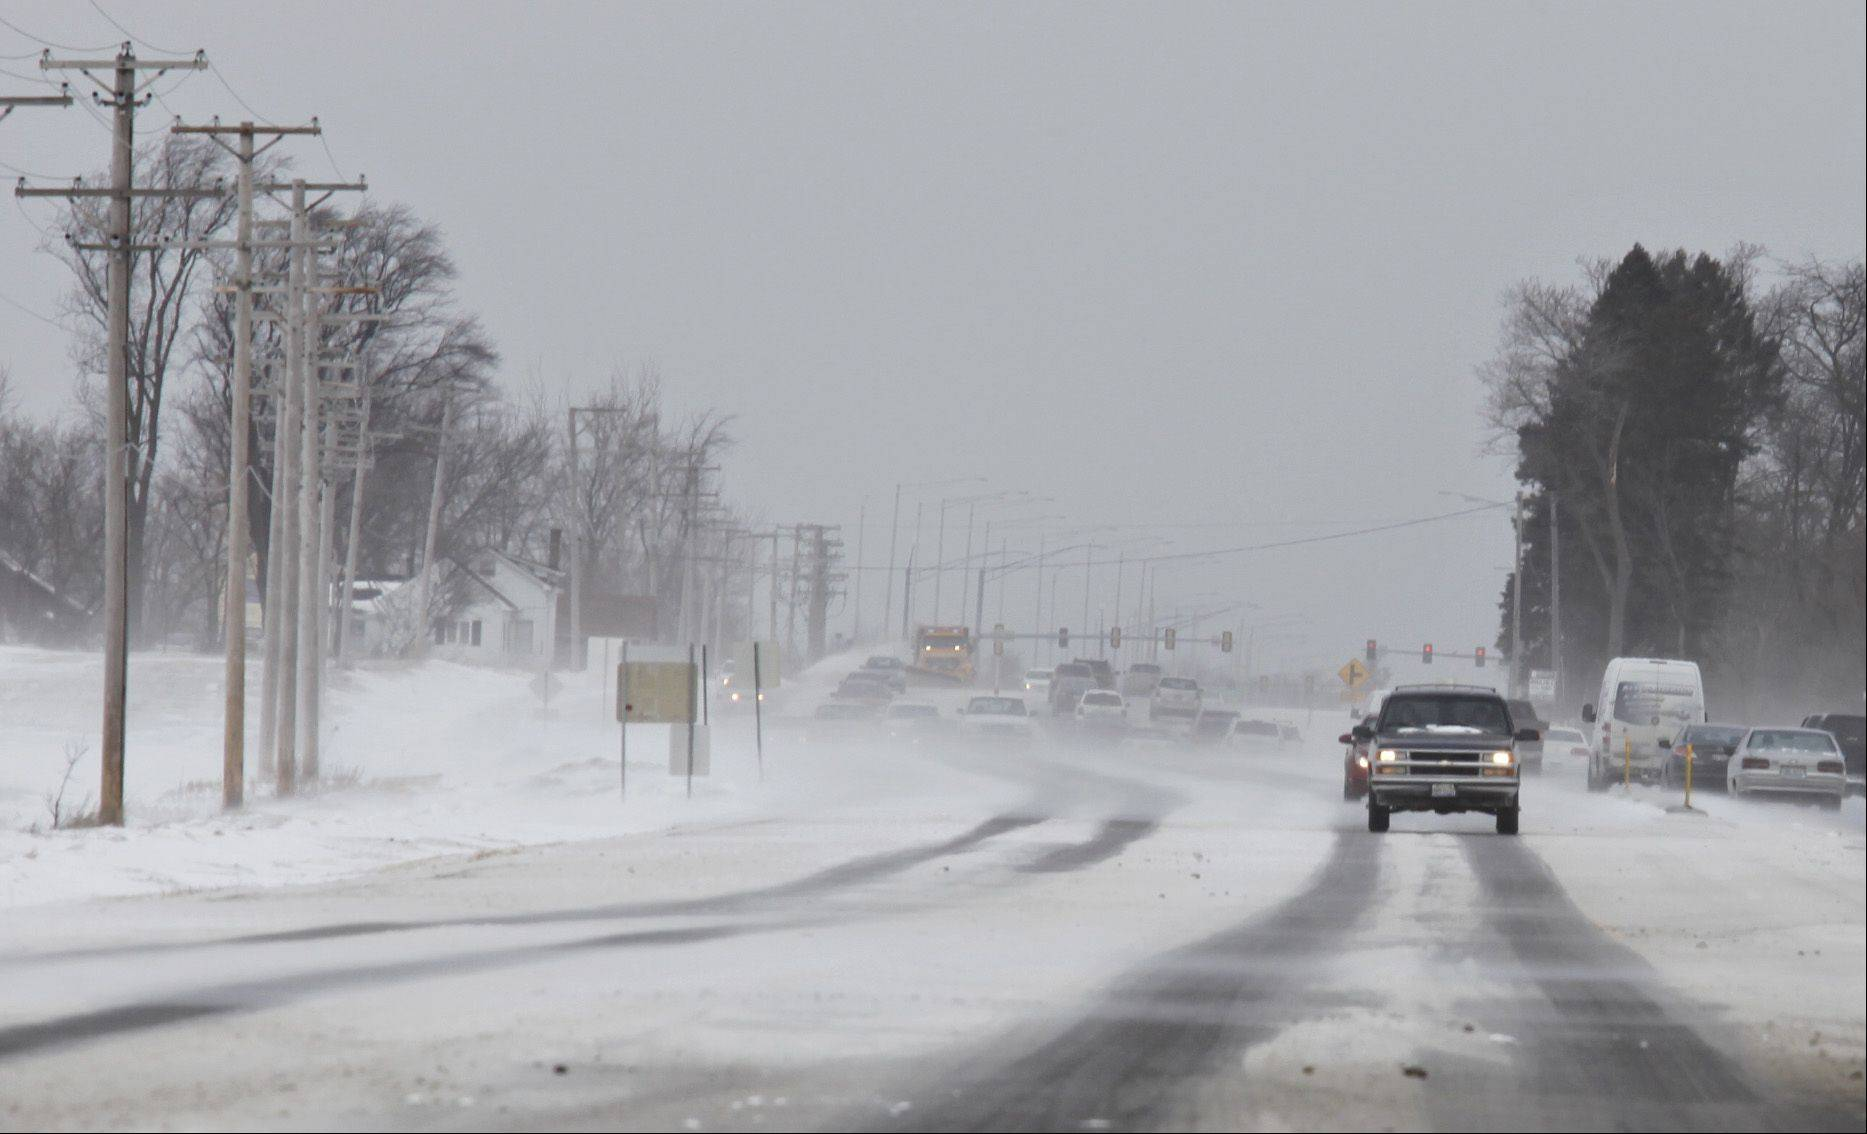 Traffic heads south last week on Randall Road Friday in Carpentersville as wind-blown snow creates only narrow strips of exposed pavement on which to drive. Will it be like this again this weekend?